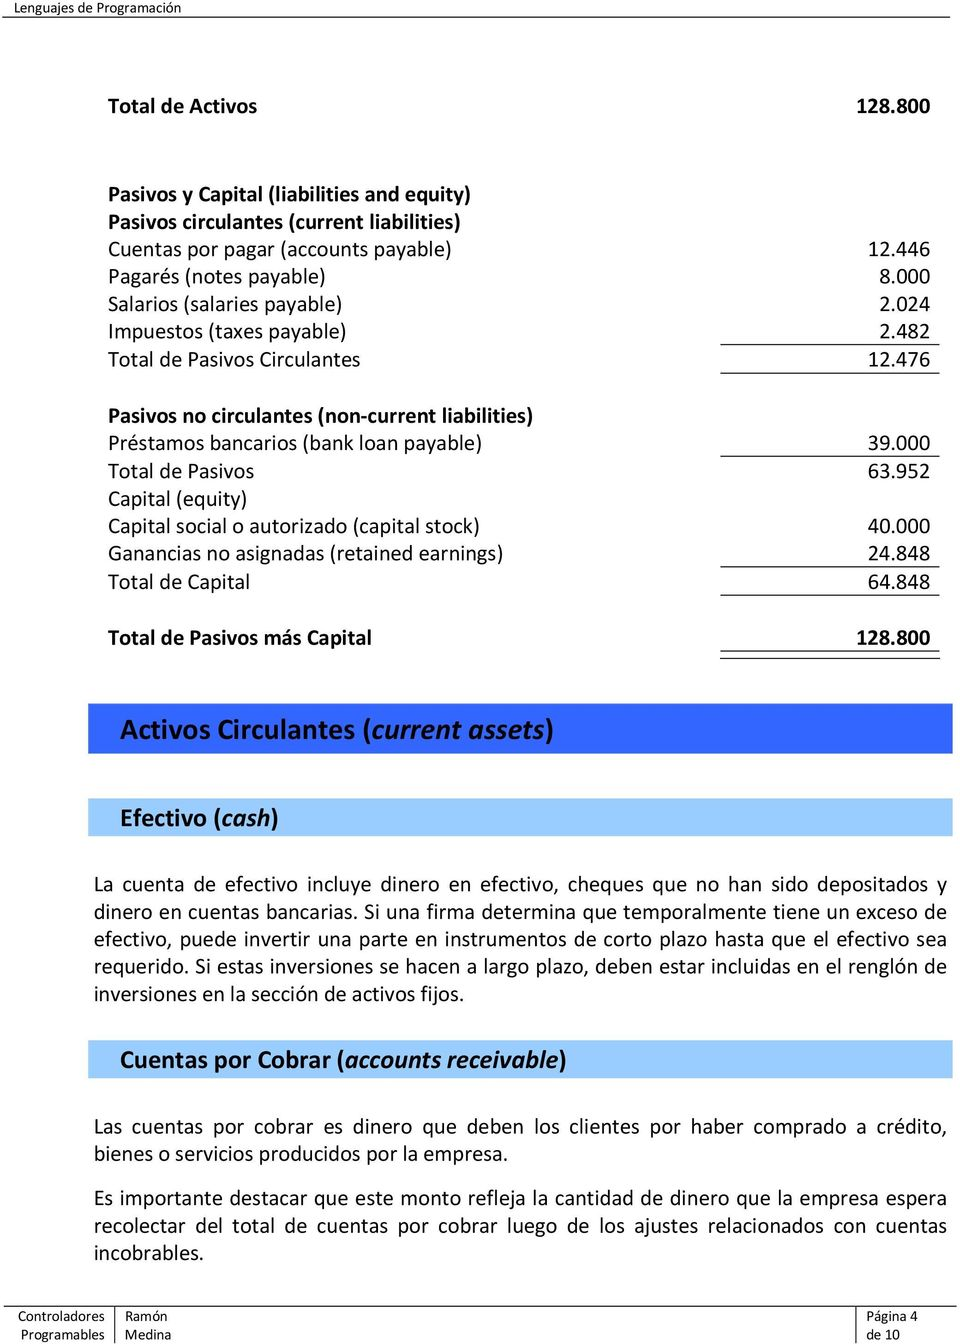 000 Total de Pasivos 63.952 Capital (equity) Capital social o autorizado (capital stock) 40.000 Ganancias no asignadas (retained earnings) 24.848 Total de Capital 64.